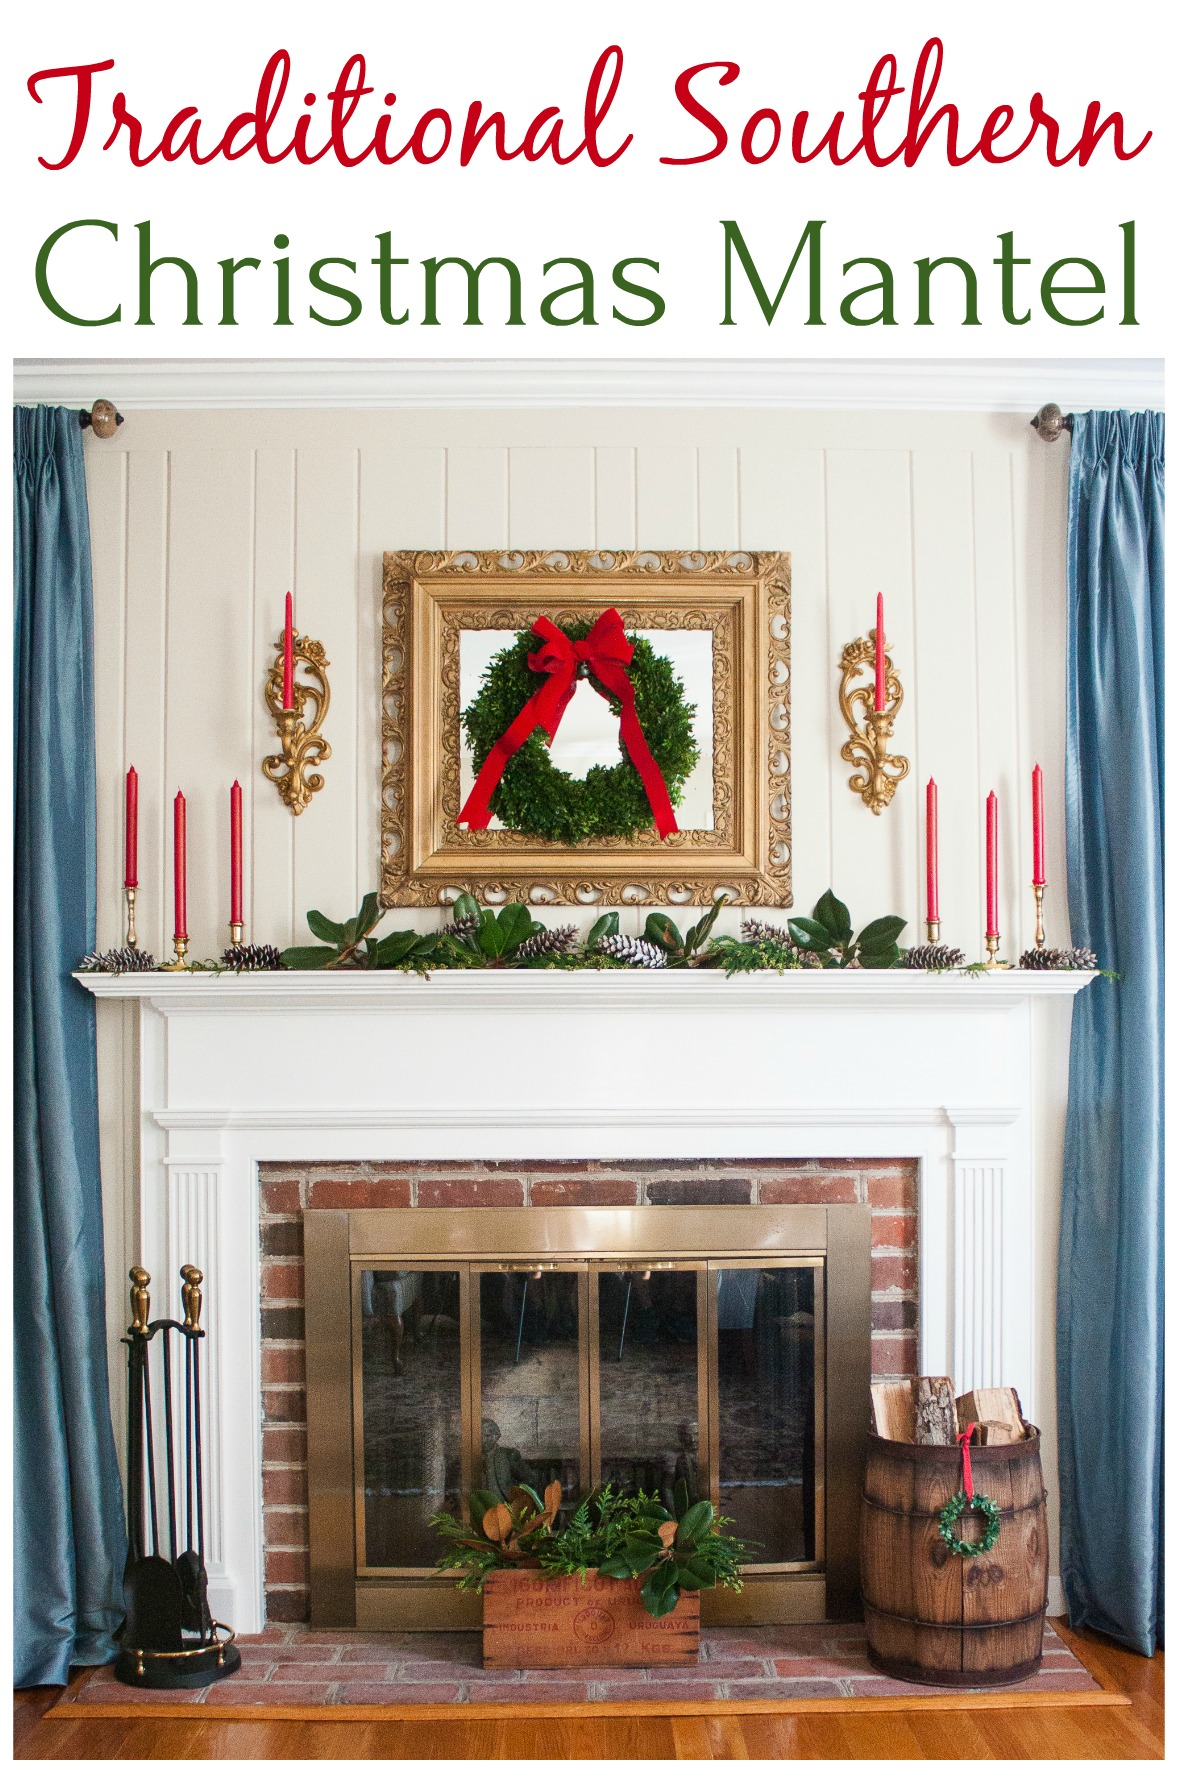 Traditional Southern Christmas Mantel -